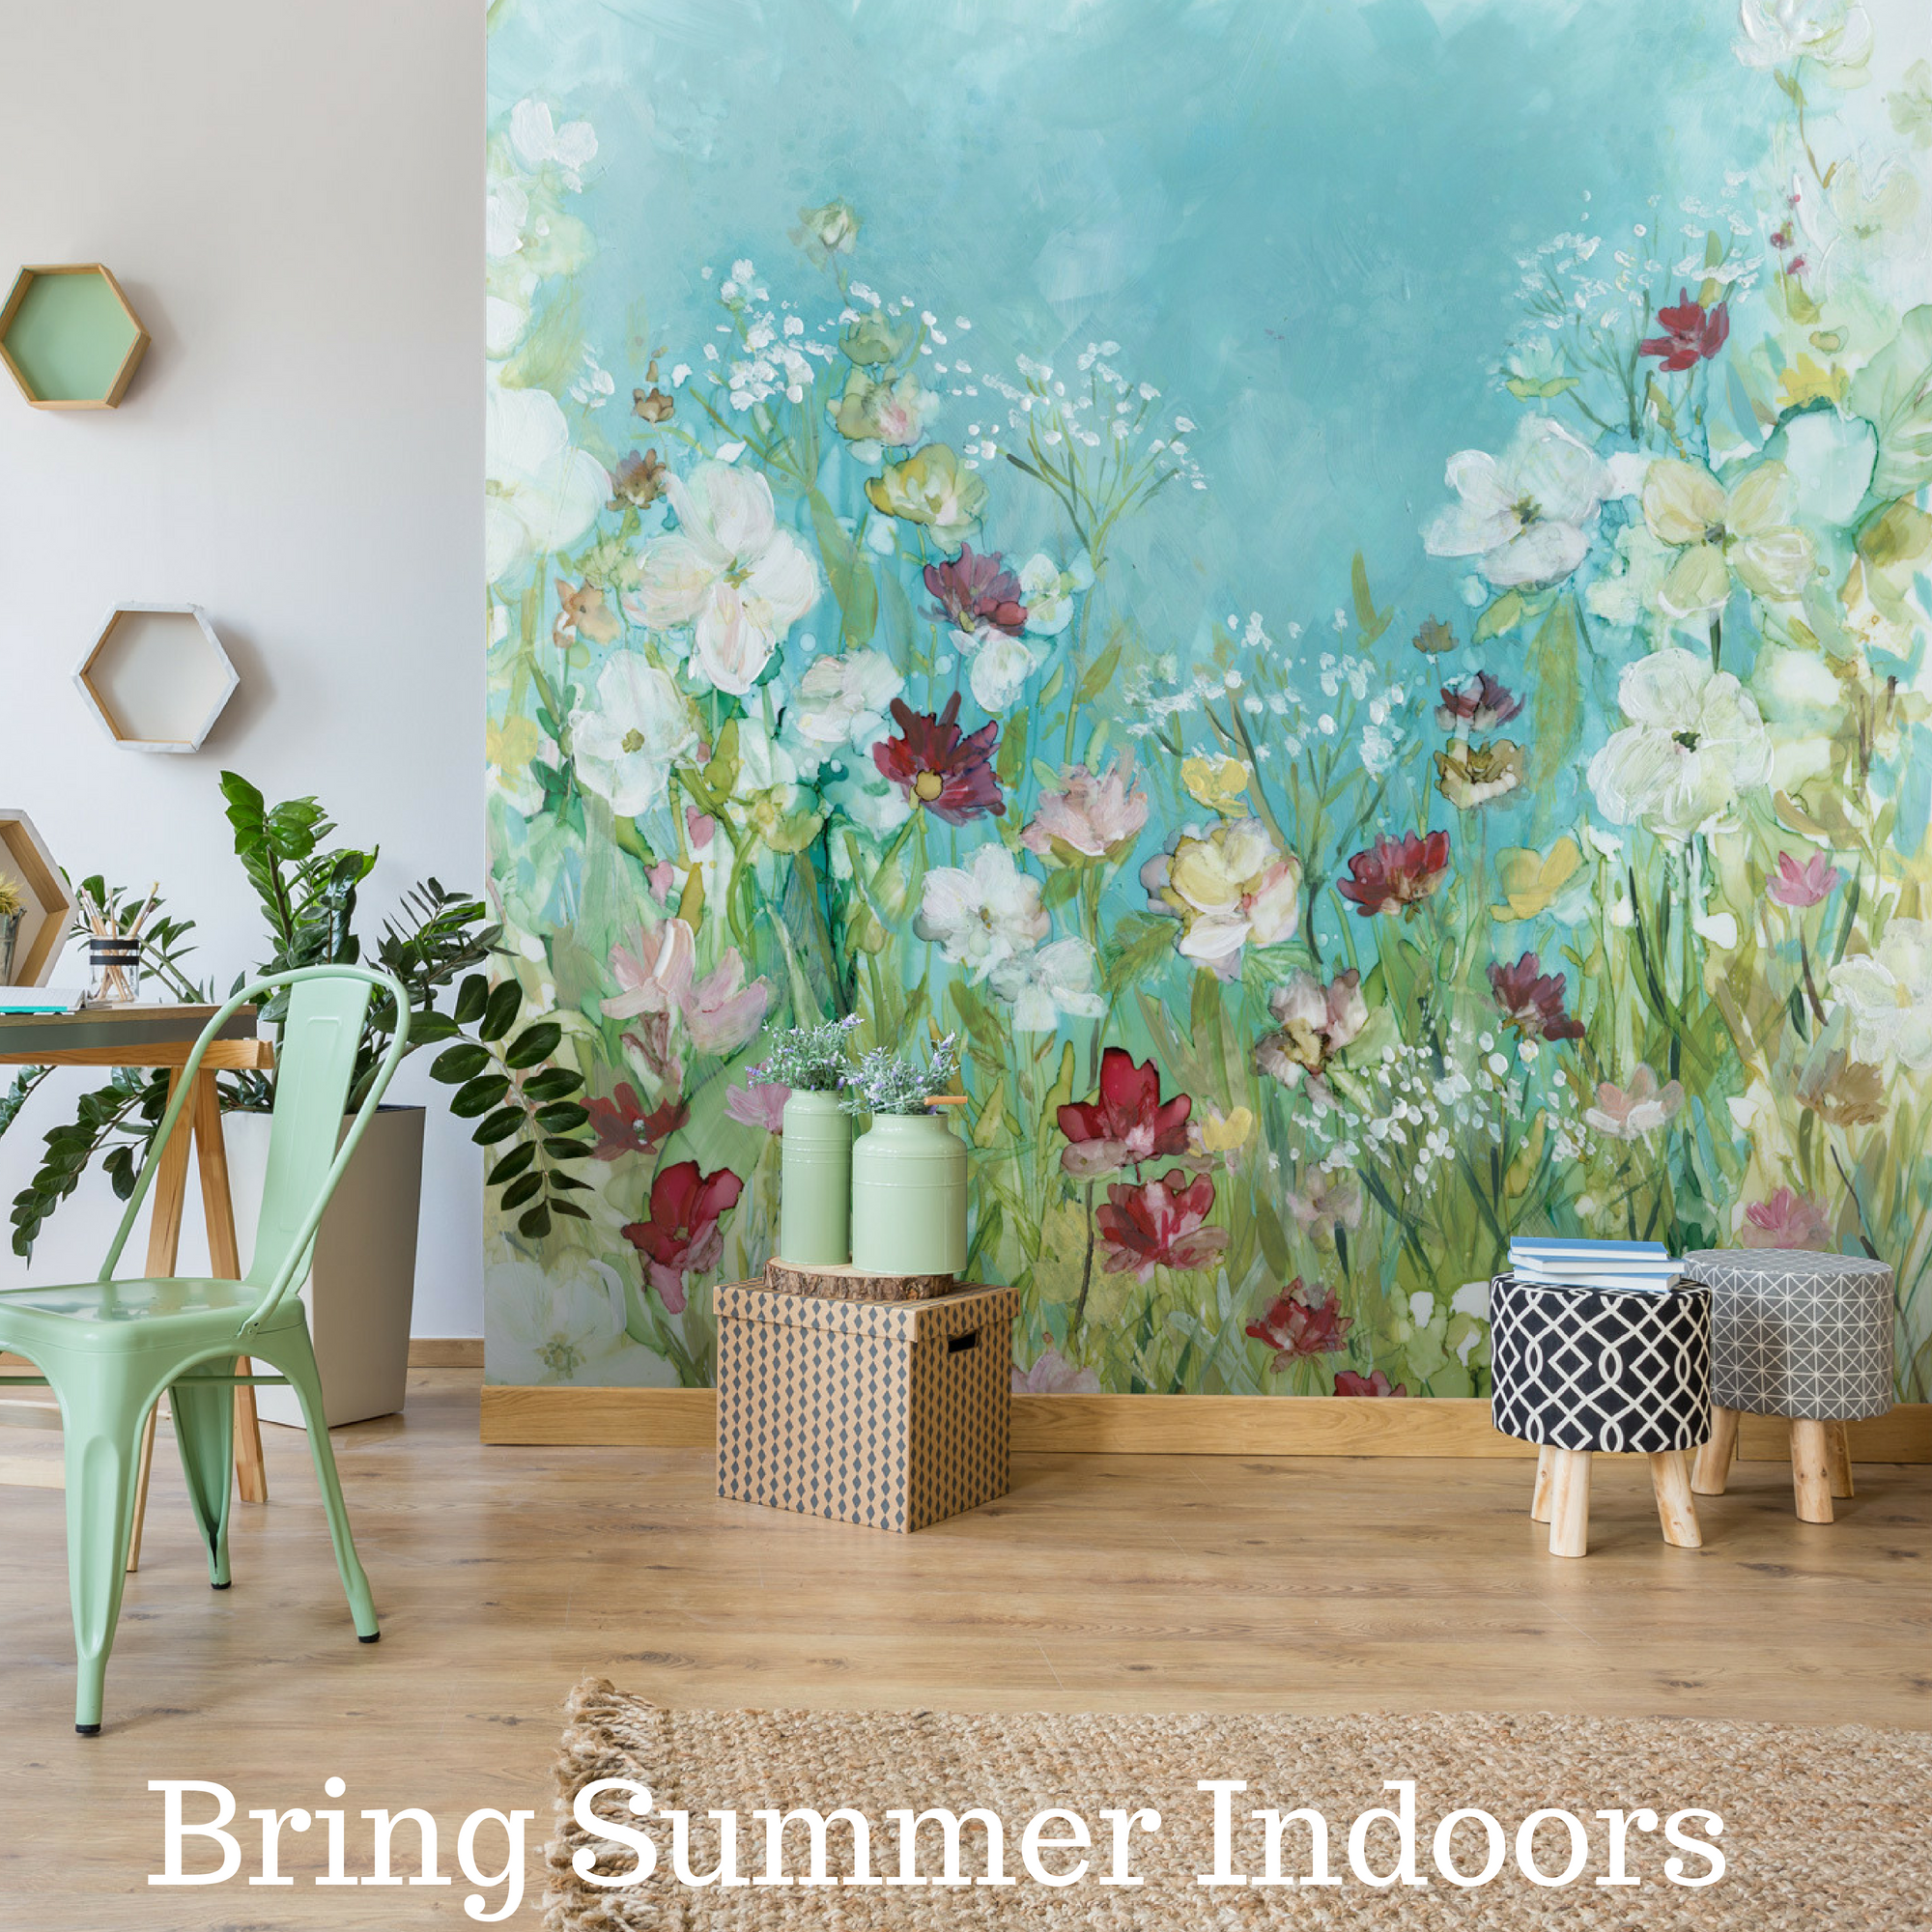 Bring Summer Indoors